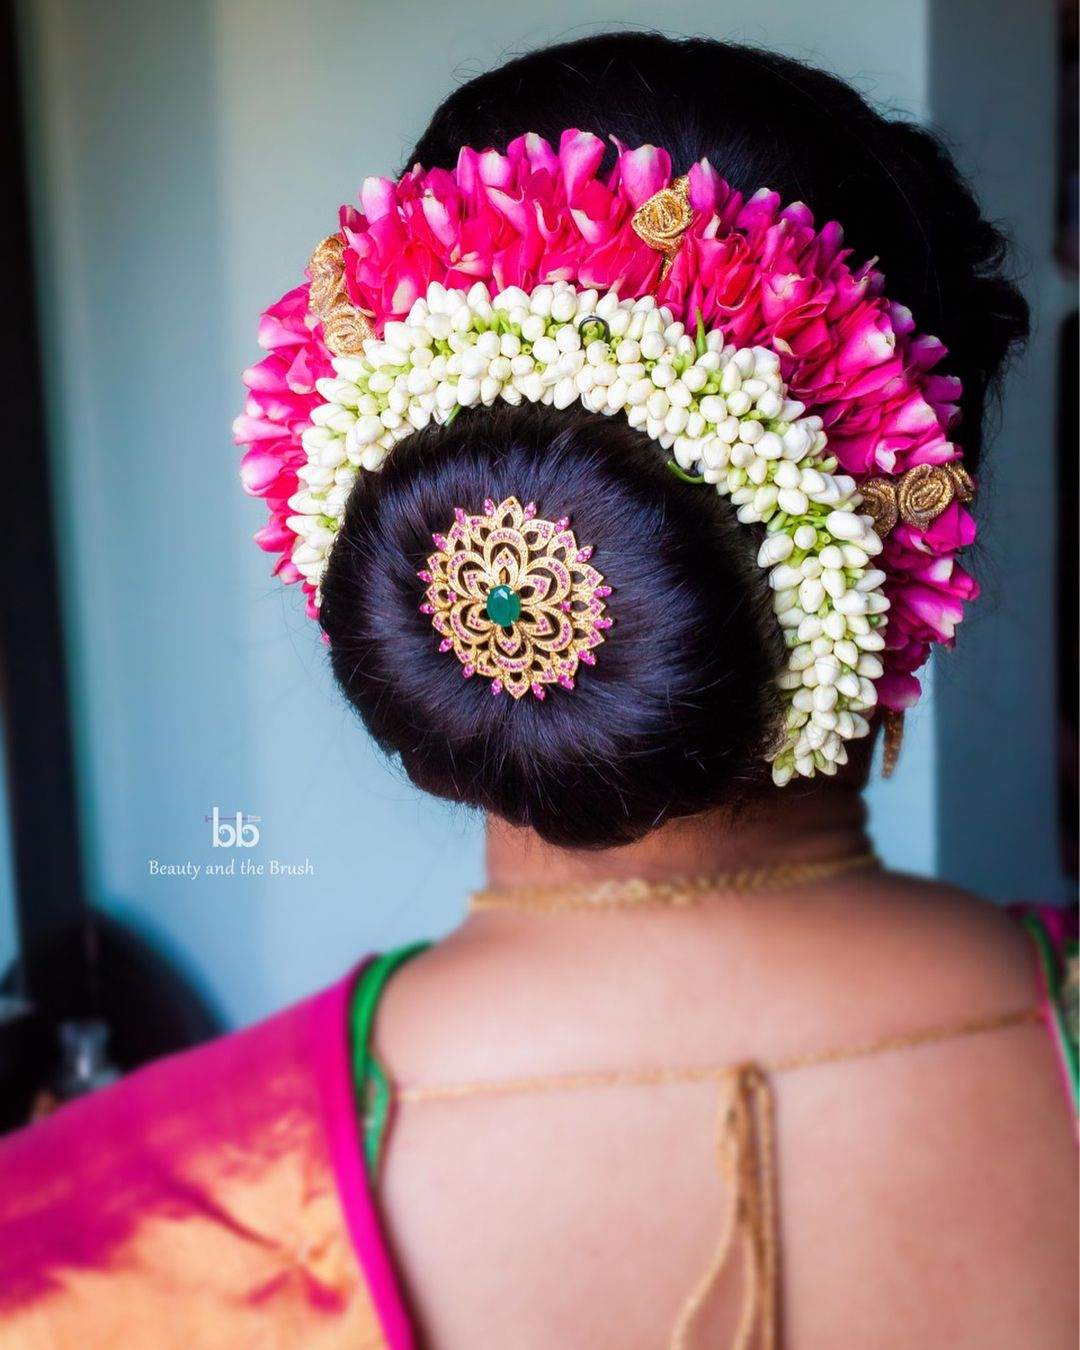 pin by savithri polavaram on hair styles in 2019 | floral